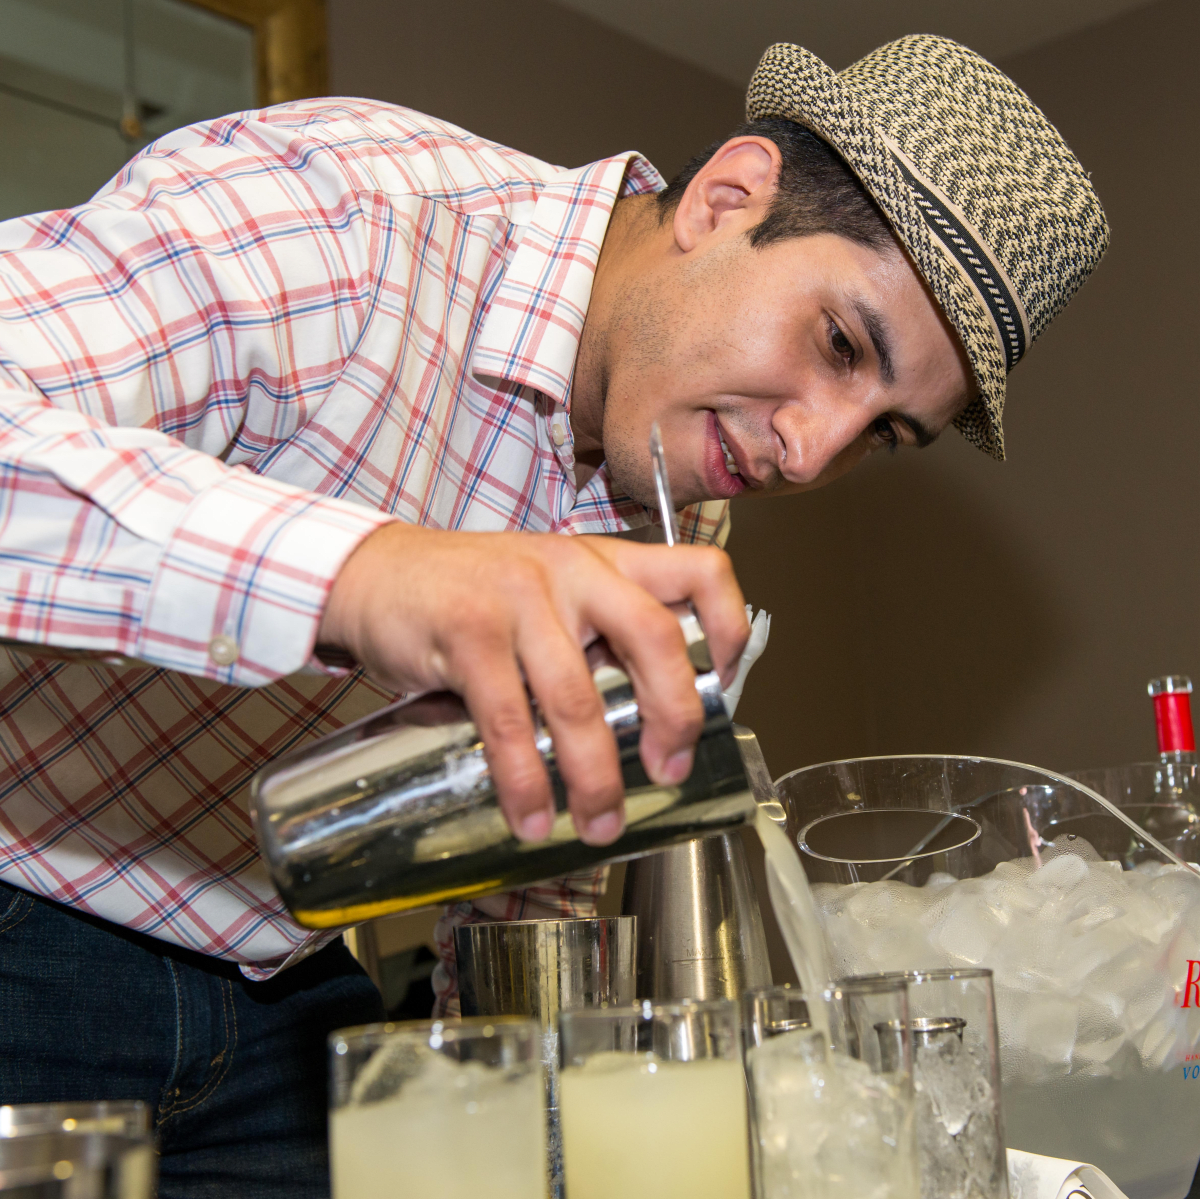 14 Luis Villegas at the Crafted mixology contest at Mr. Peeples July 2014